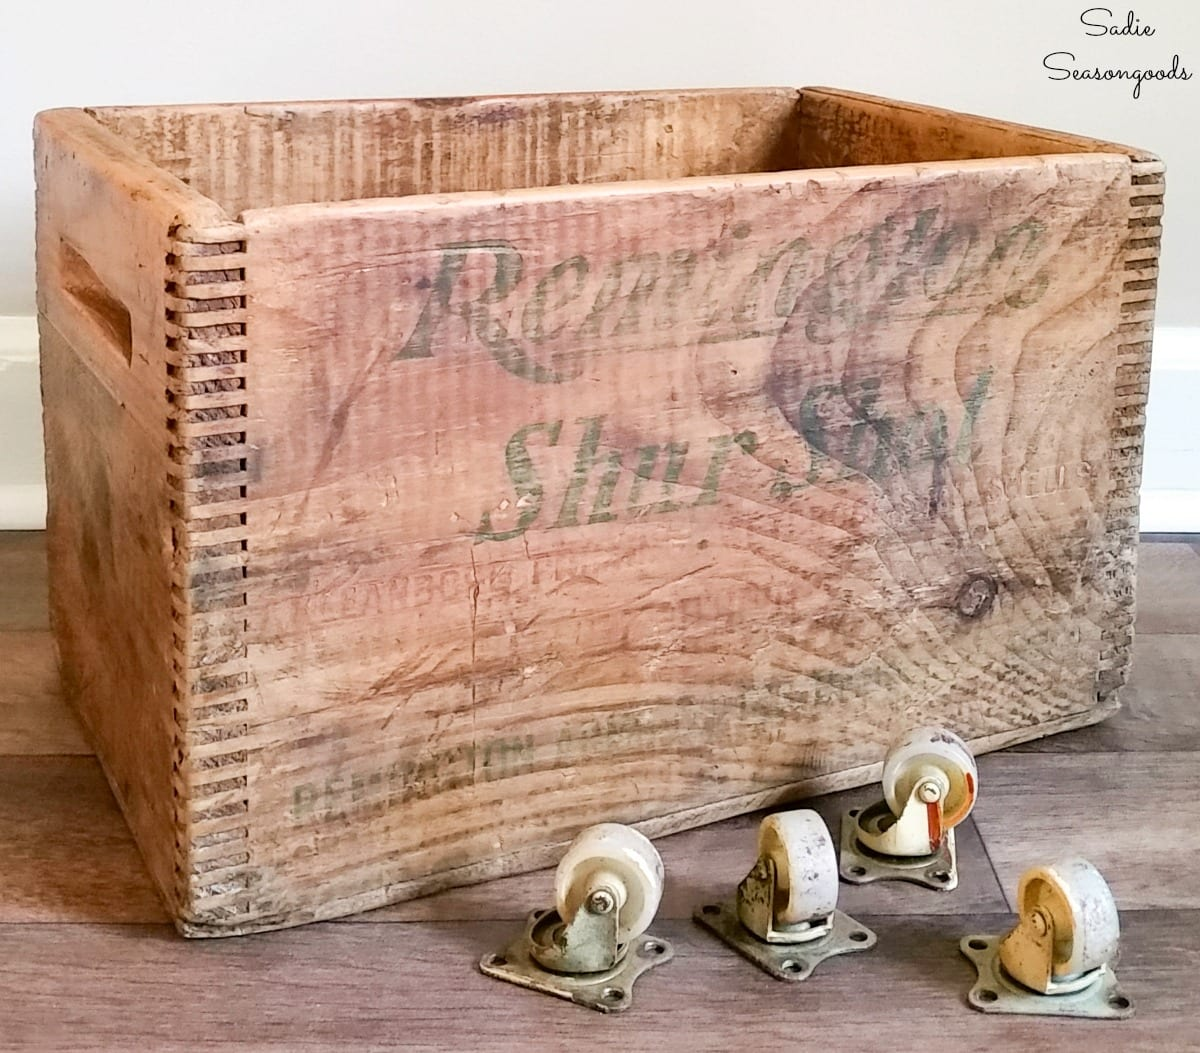 Vintage wooden crate and vintage casters